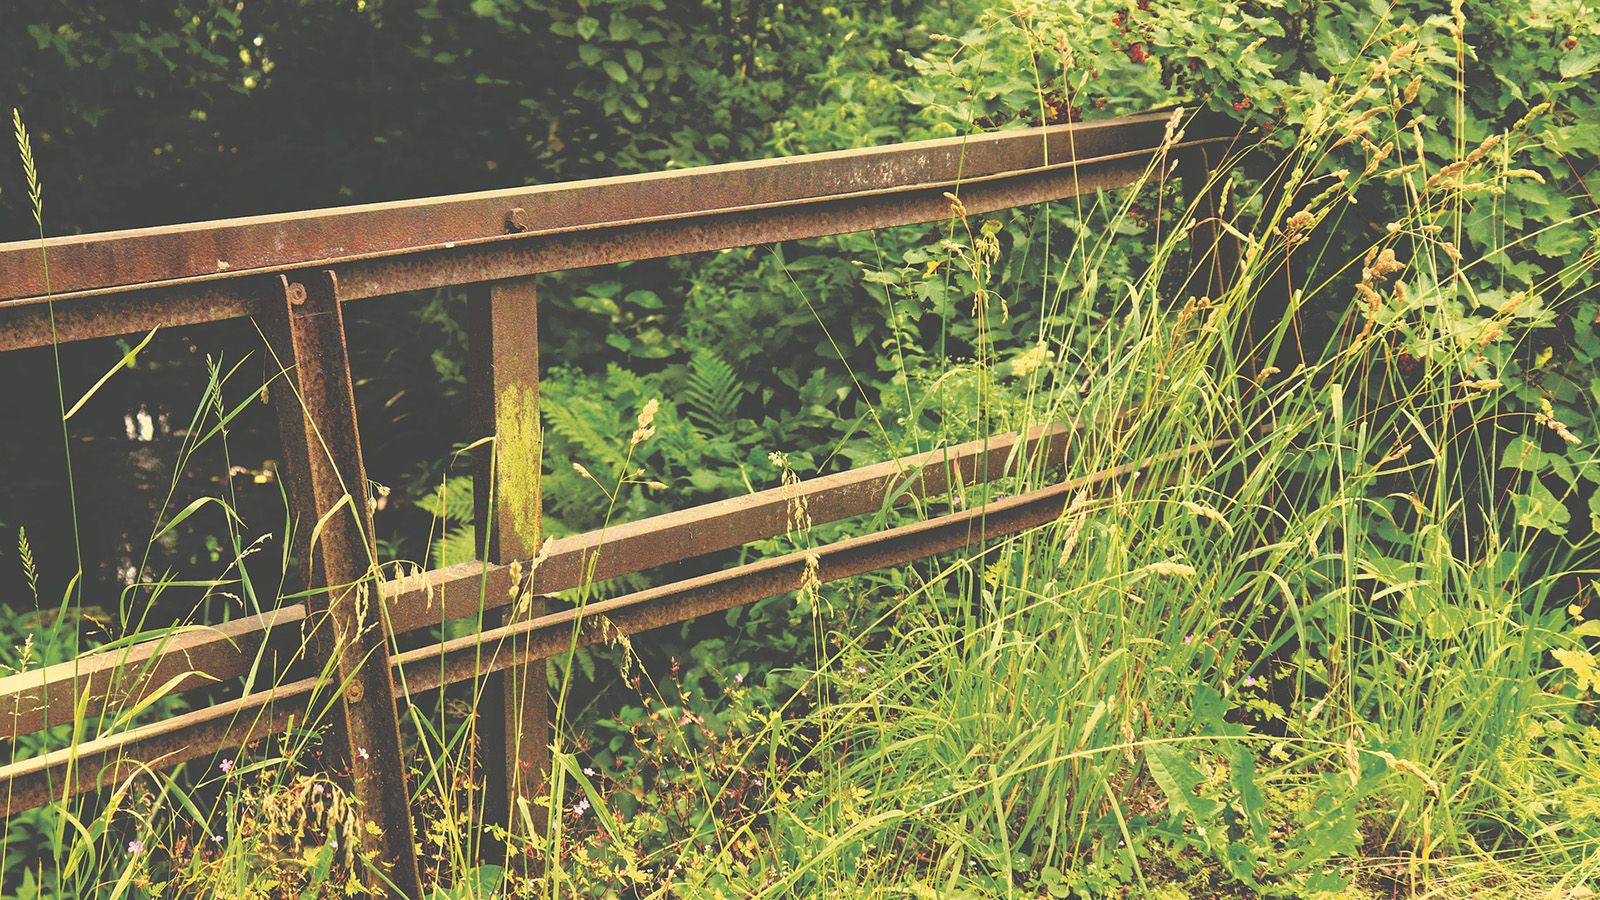 Long grass growing over a rusty gate banner image